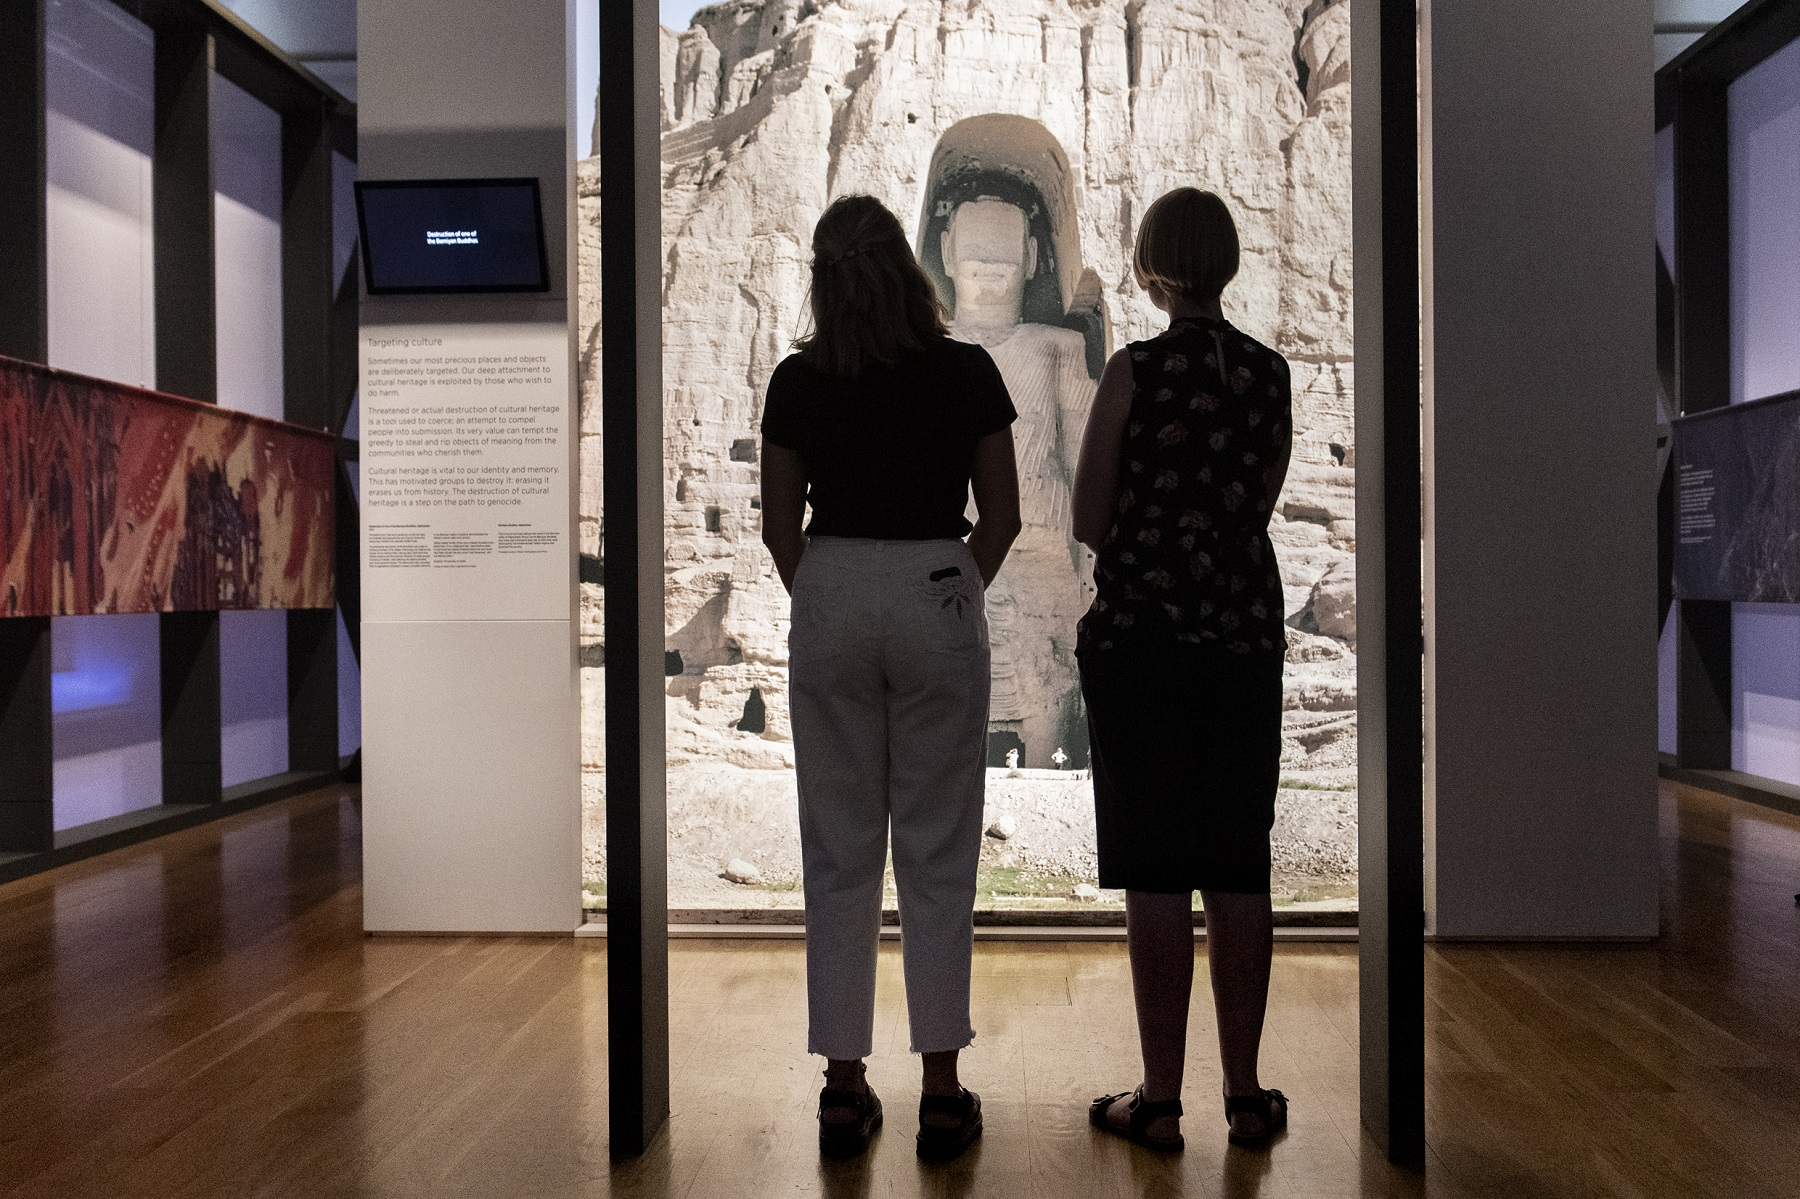 © IWM What Remains, an exhibition curated in partnership with Historic England, forms part of IWM's free Culture Under Attack season